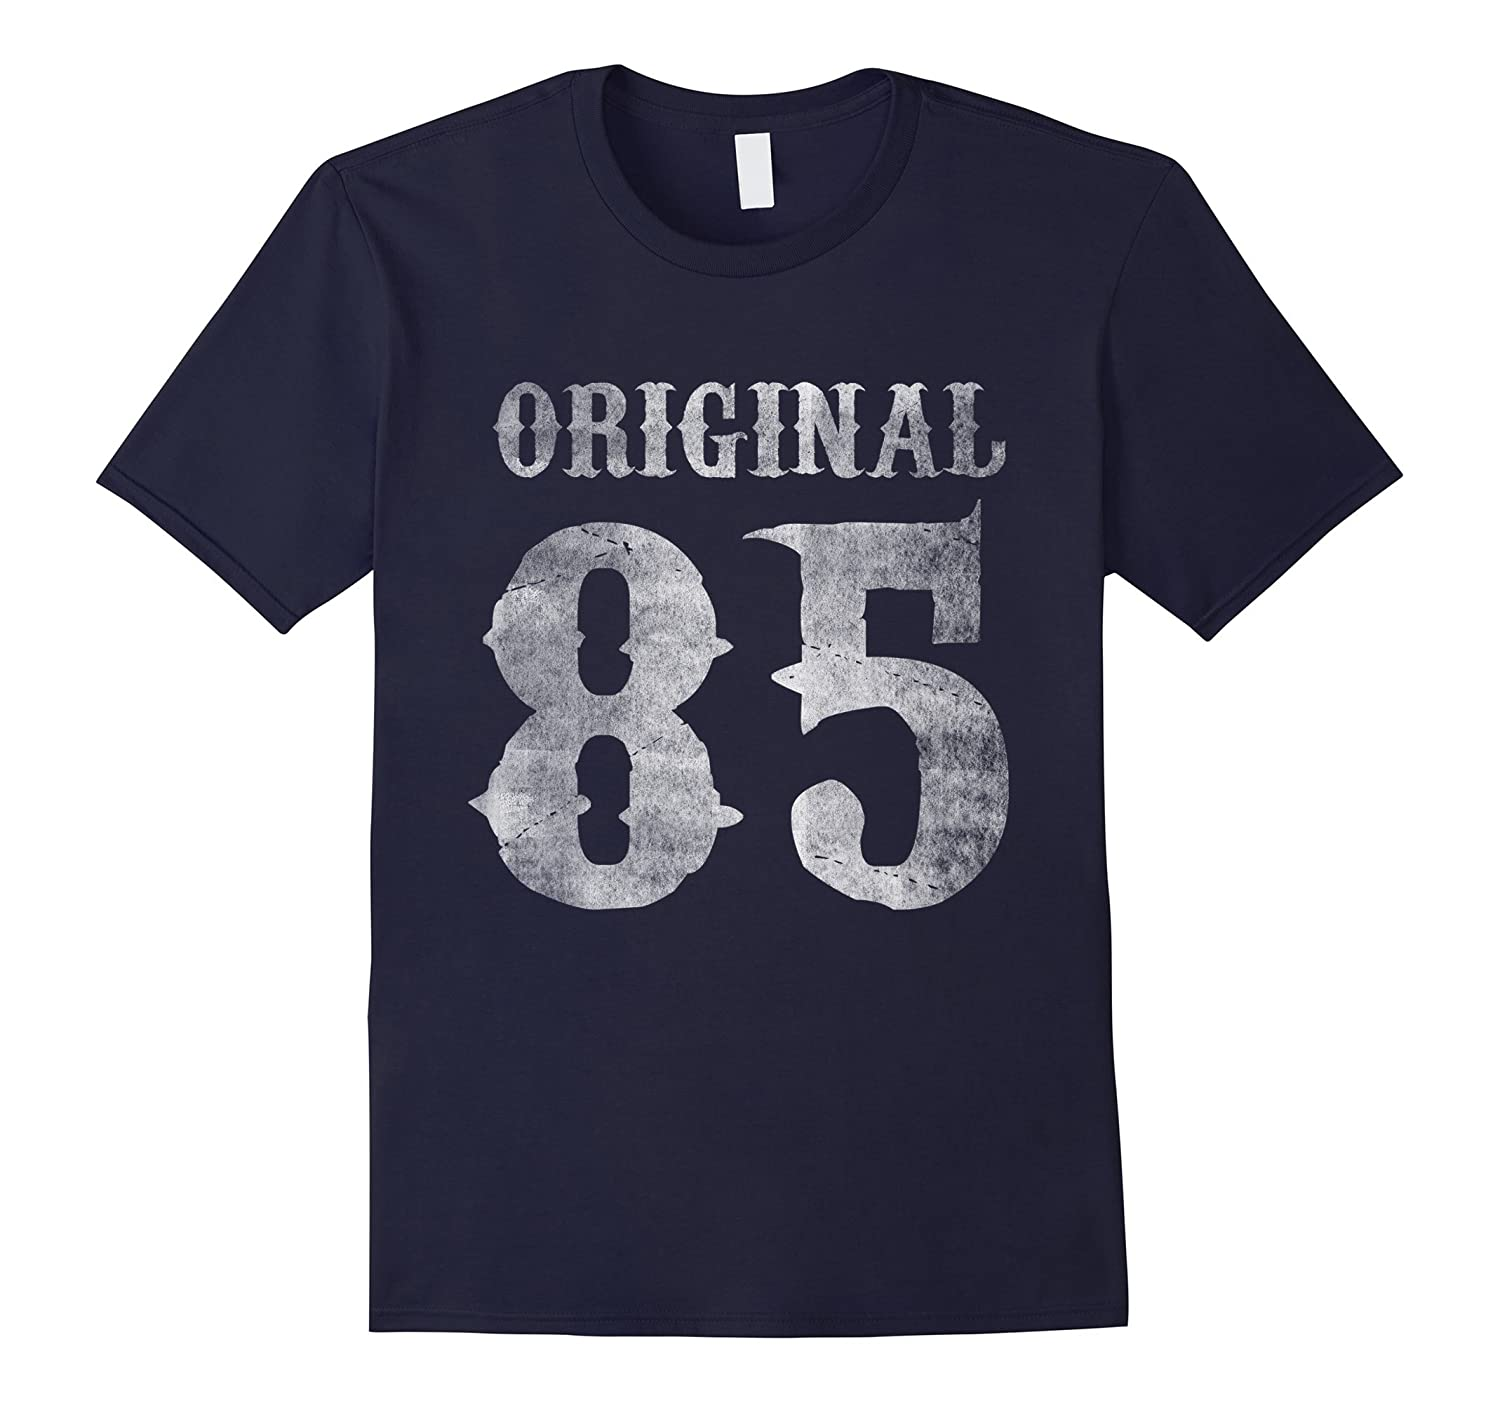 1985 Birthday Vintage T-shirt 85th Birthday Men Women kids-CD